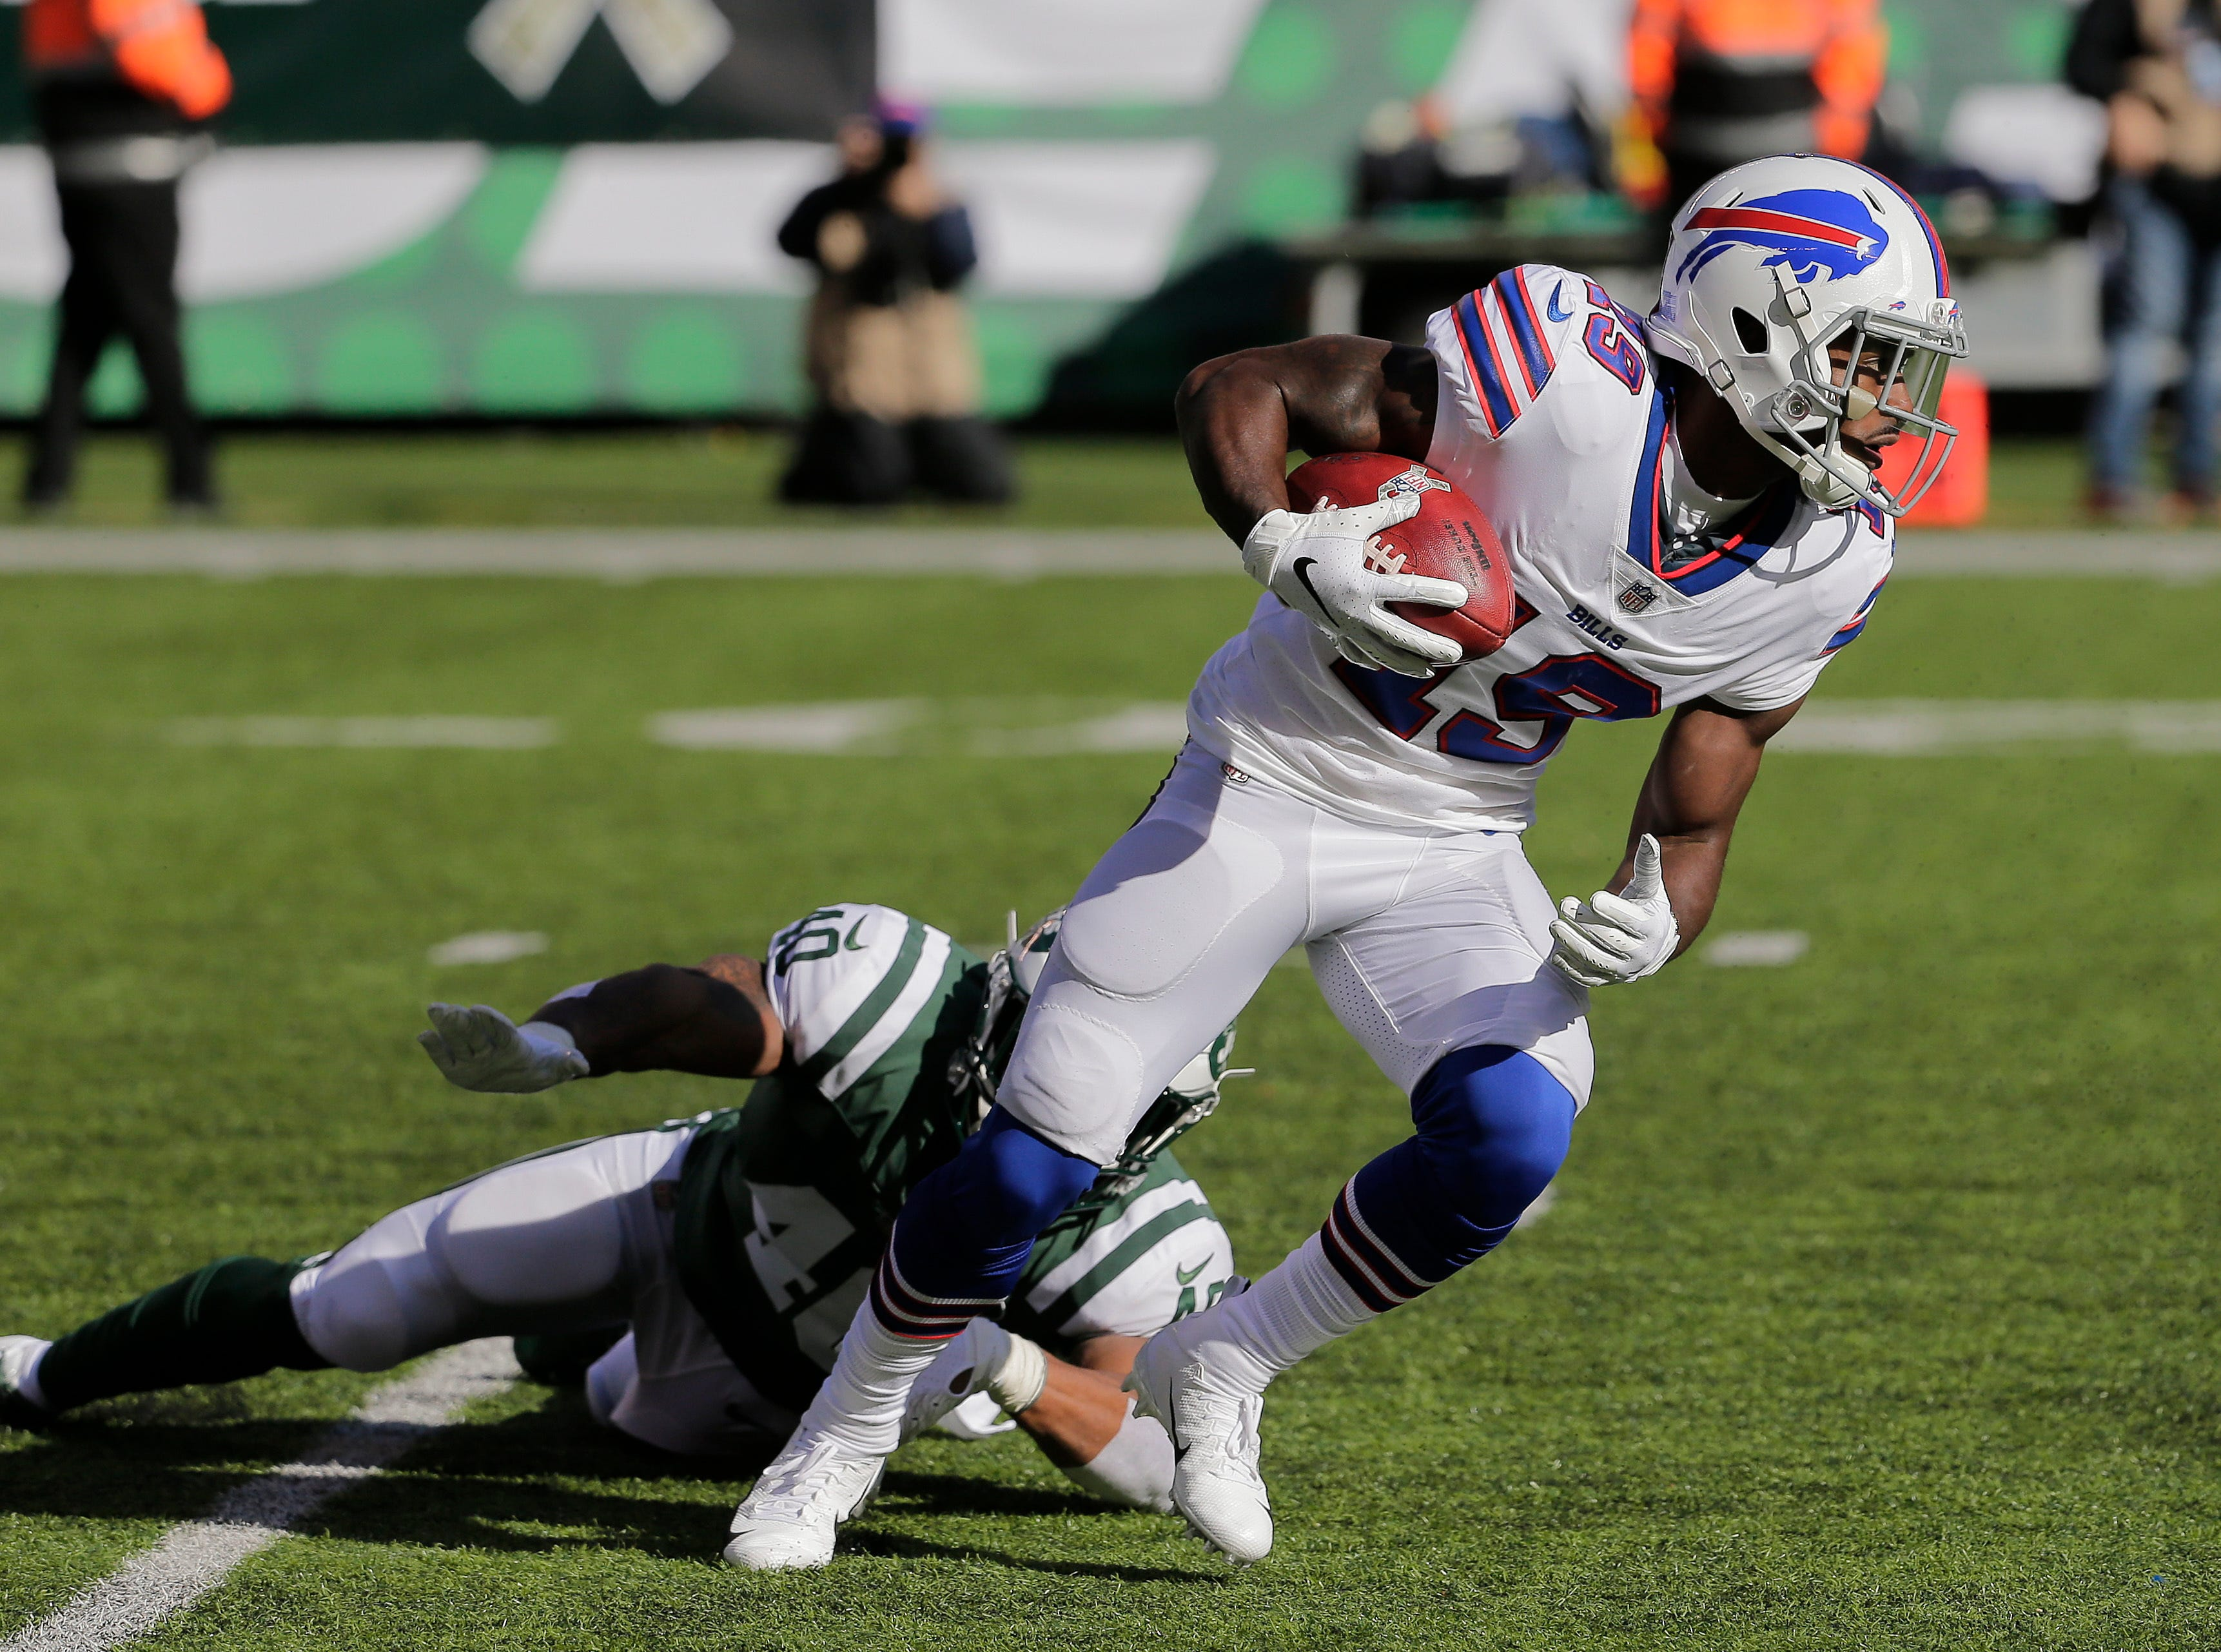 Buffalo Bills wide receiver Isaiah McKenzie (19) runs the ball against the New York Jets during the first quarter of an NFL football game, Sunday, Nov. 11, 2018, in East Rutherford, N.J. (AP Photo/Seth Wenig)